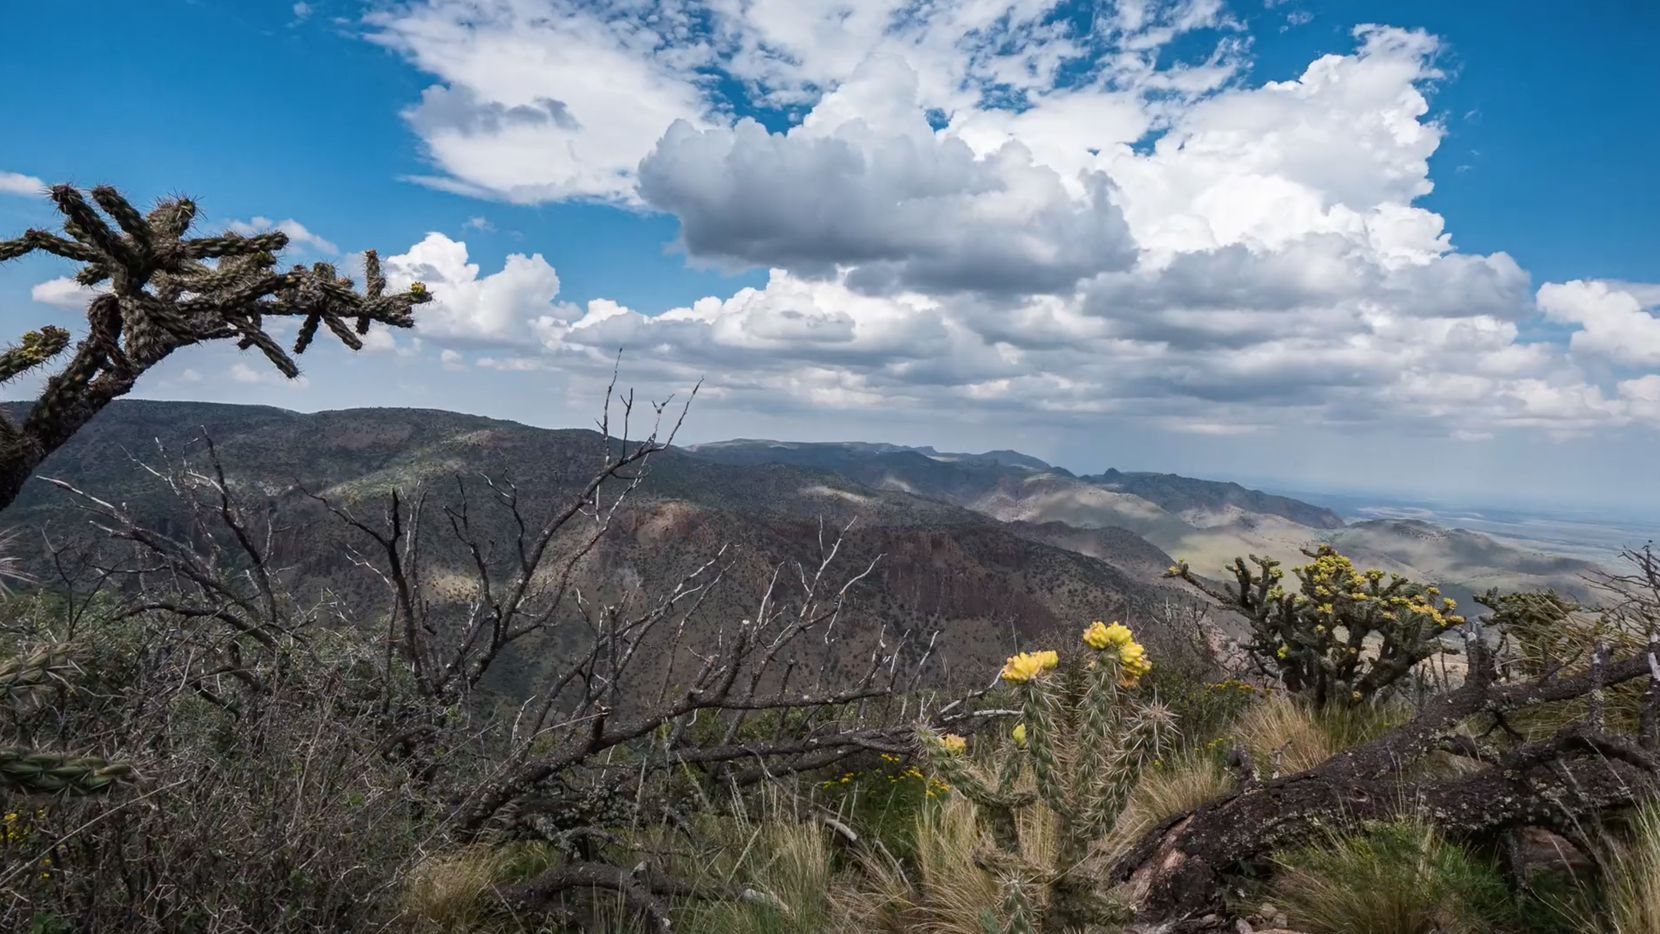 The Fox Canyon Ranch has 7,000-foot peaks.